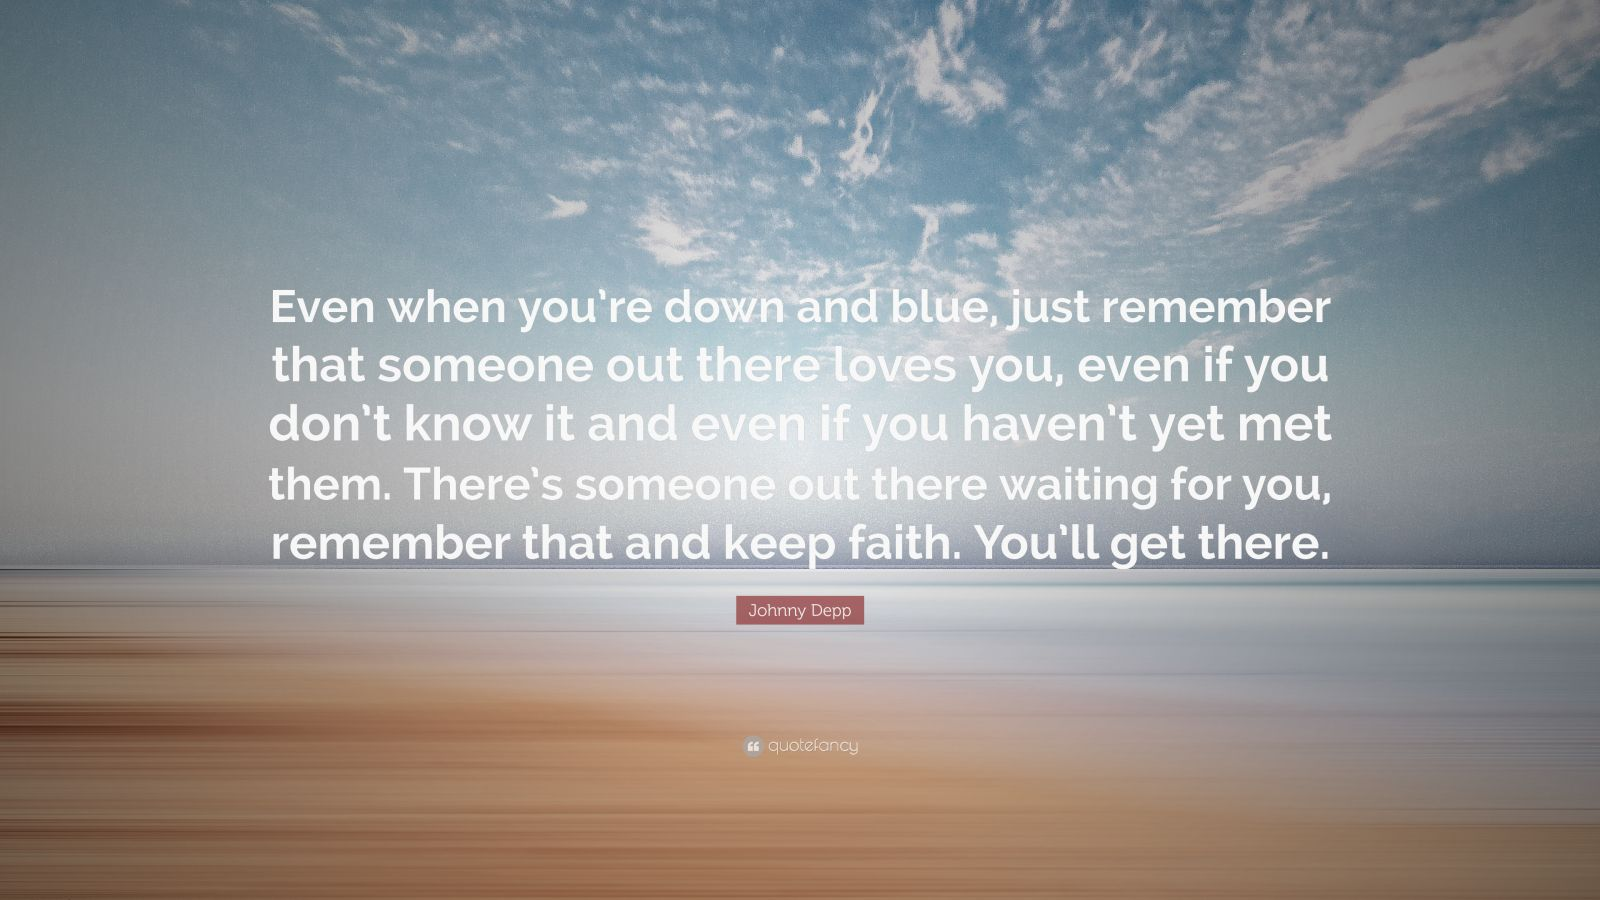 """Johnny Depp Quote: """"Even when you're down and blue, just remember that someone out there loves you, even if you don't know it and even if you haven't yet met them. There's someone out there waiting for you, remember that and keep faith. You'll get there."""""""